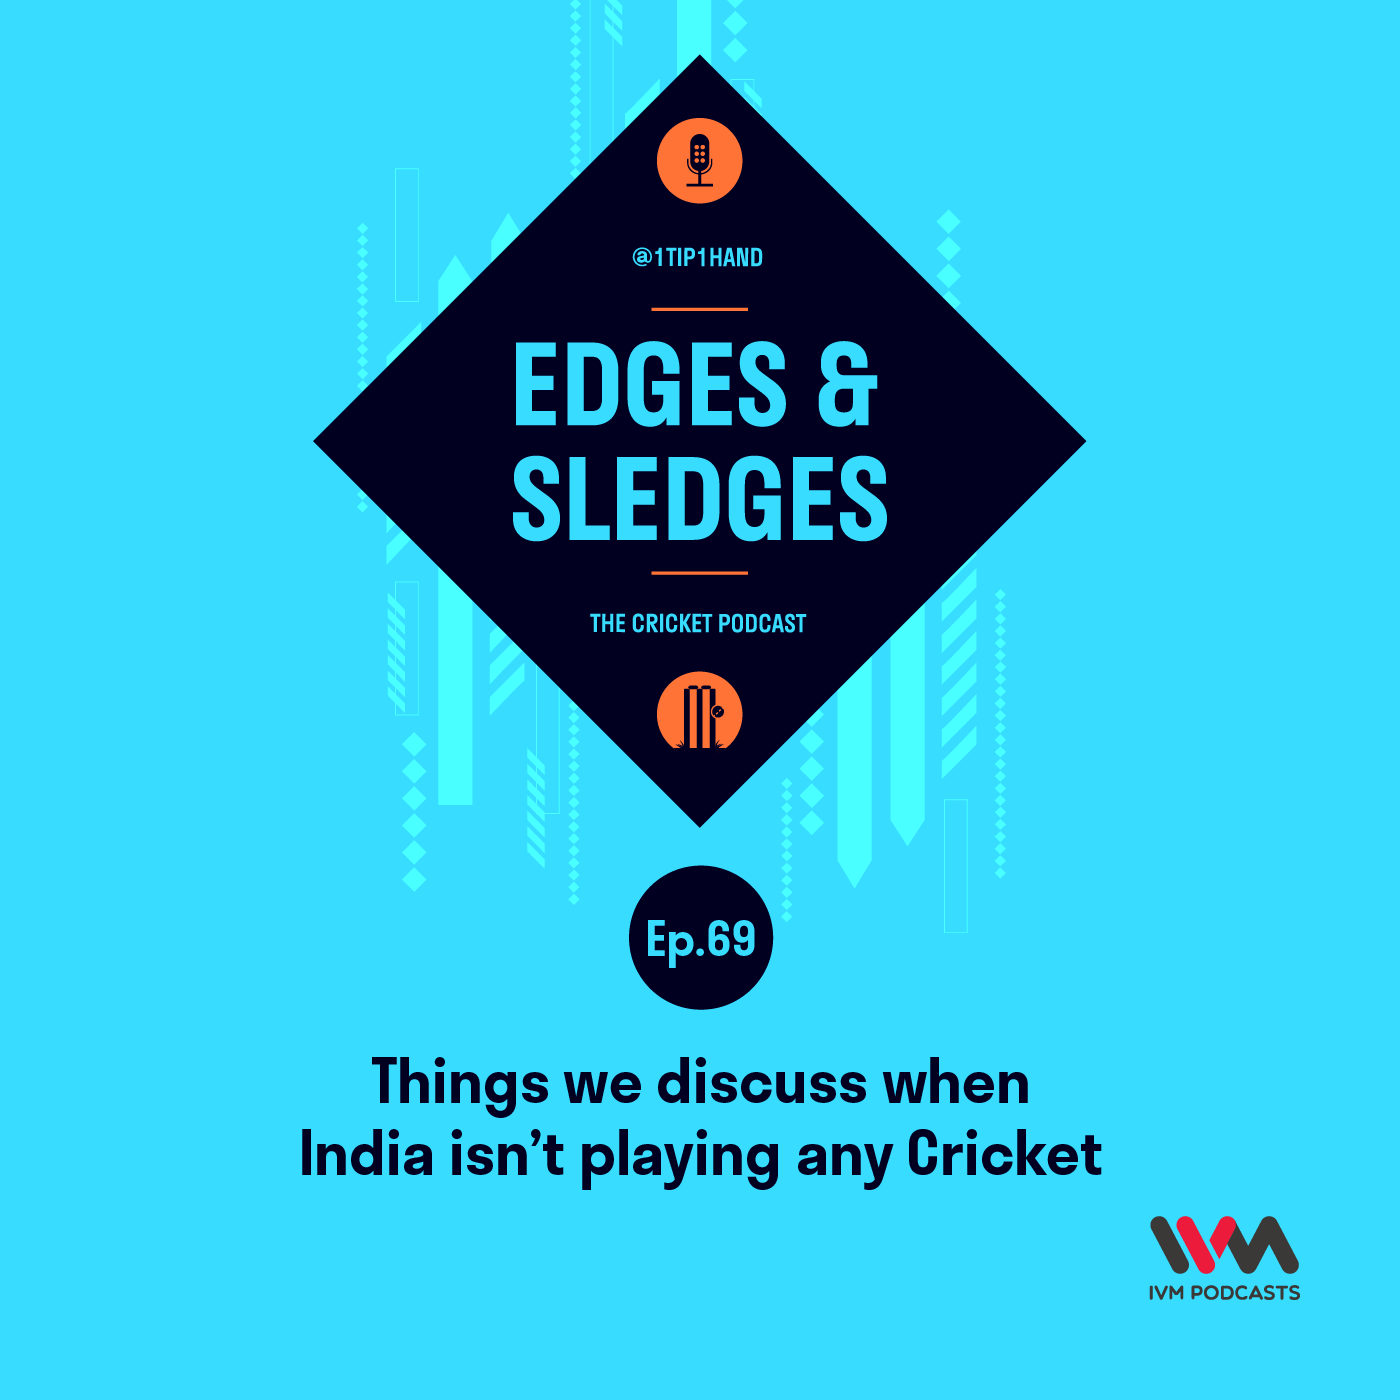 Ep. 69: Things we discuss when India isn't playing any Cricket